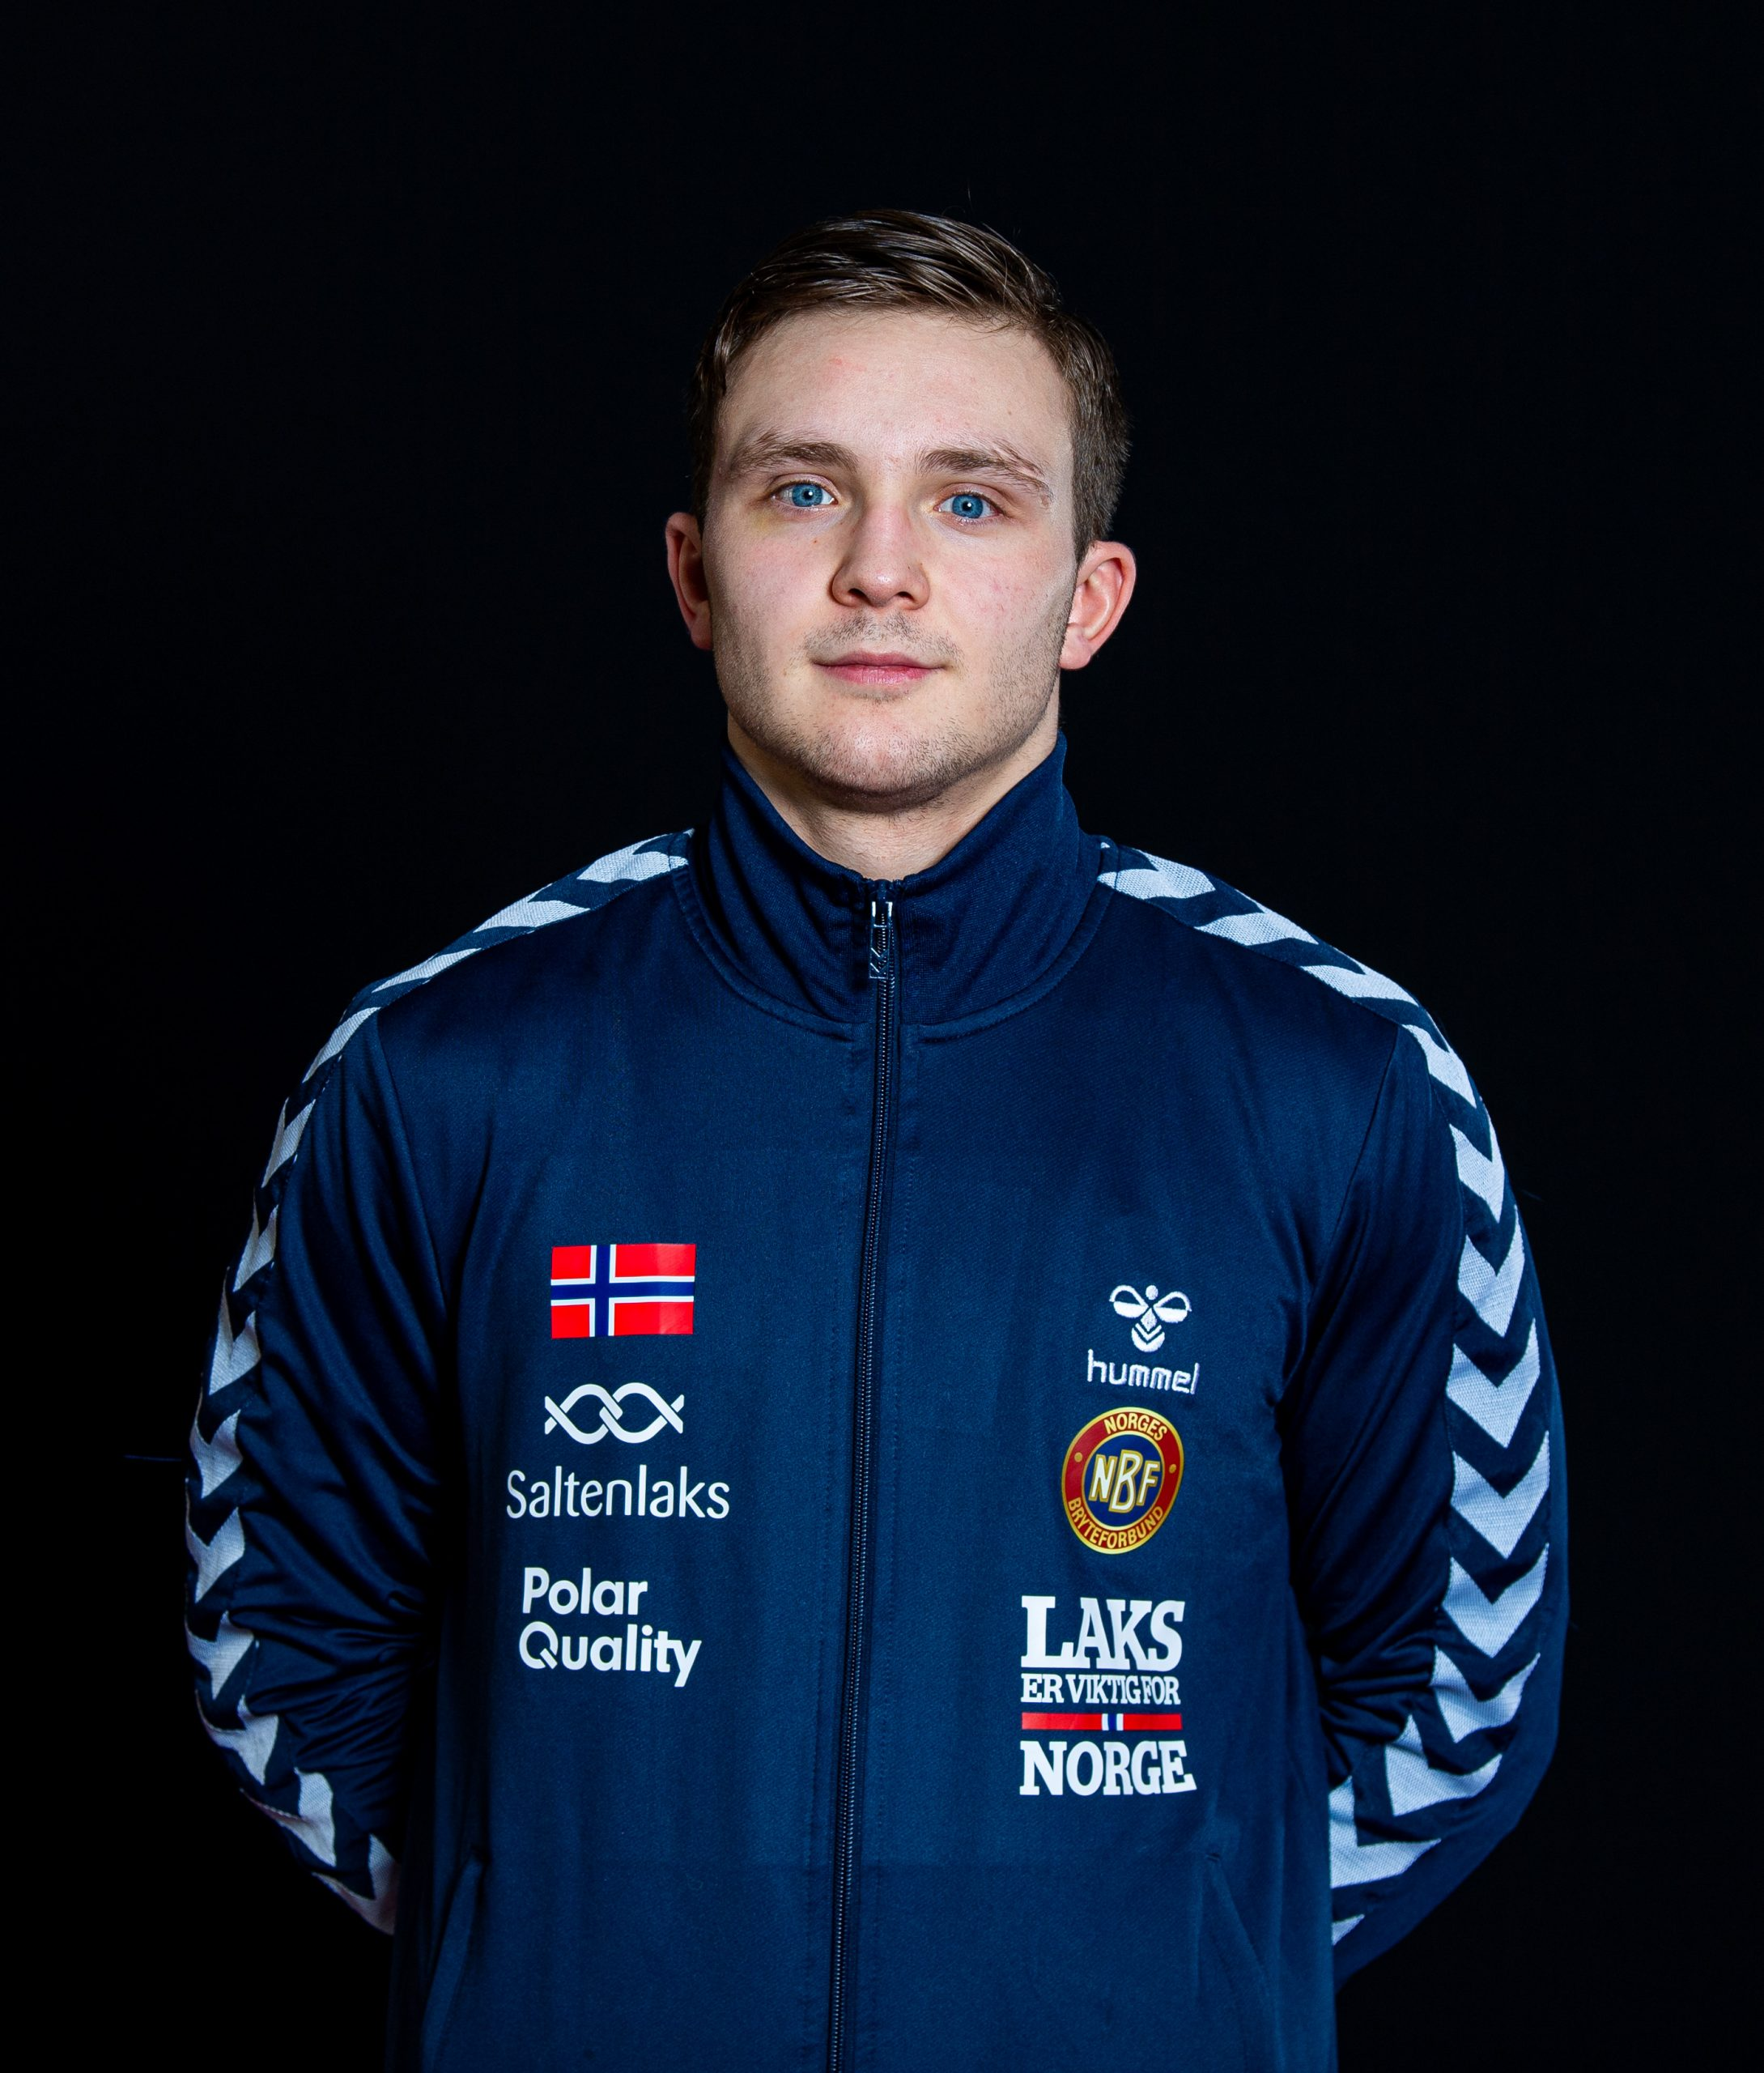 Mathias Næss